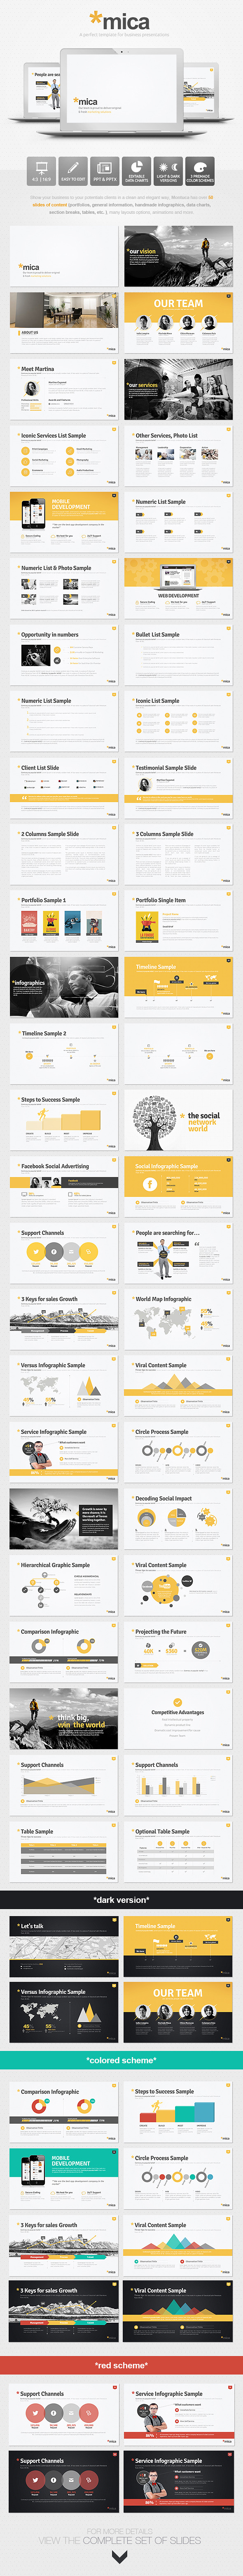 Mica powerpoint presentation template by eamejia graphicriver mica powerpoint presentation template toneelgroepblik Image collections